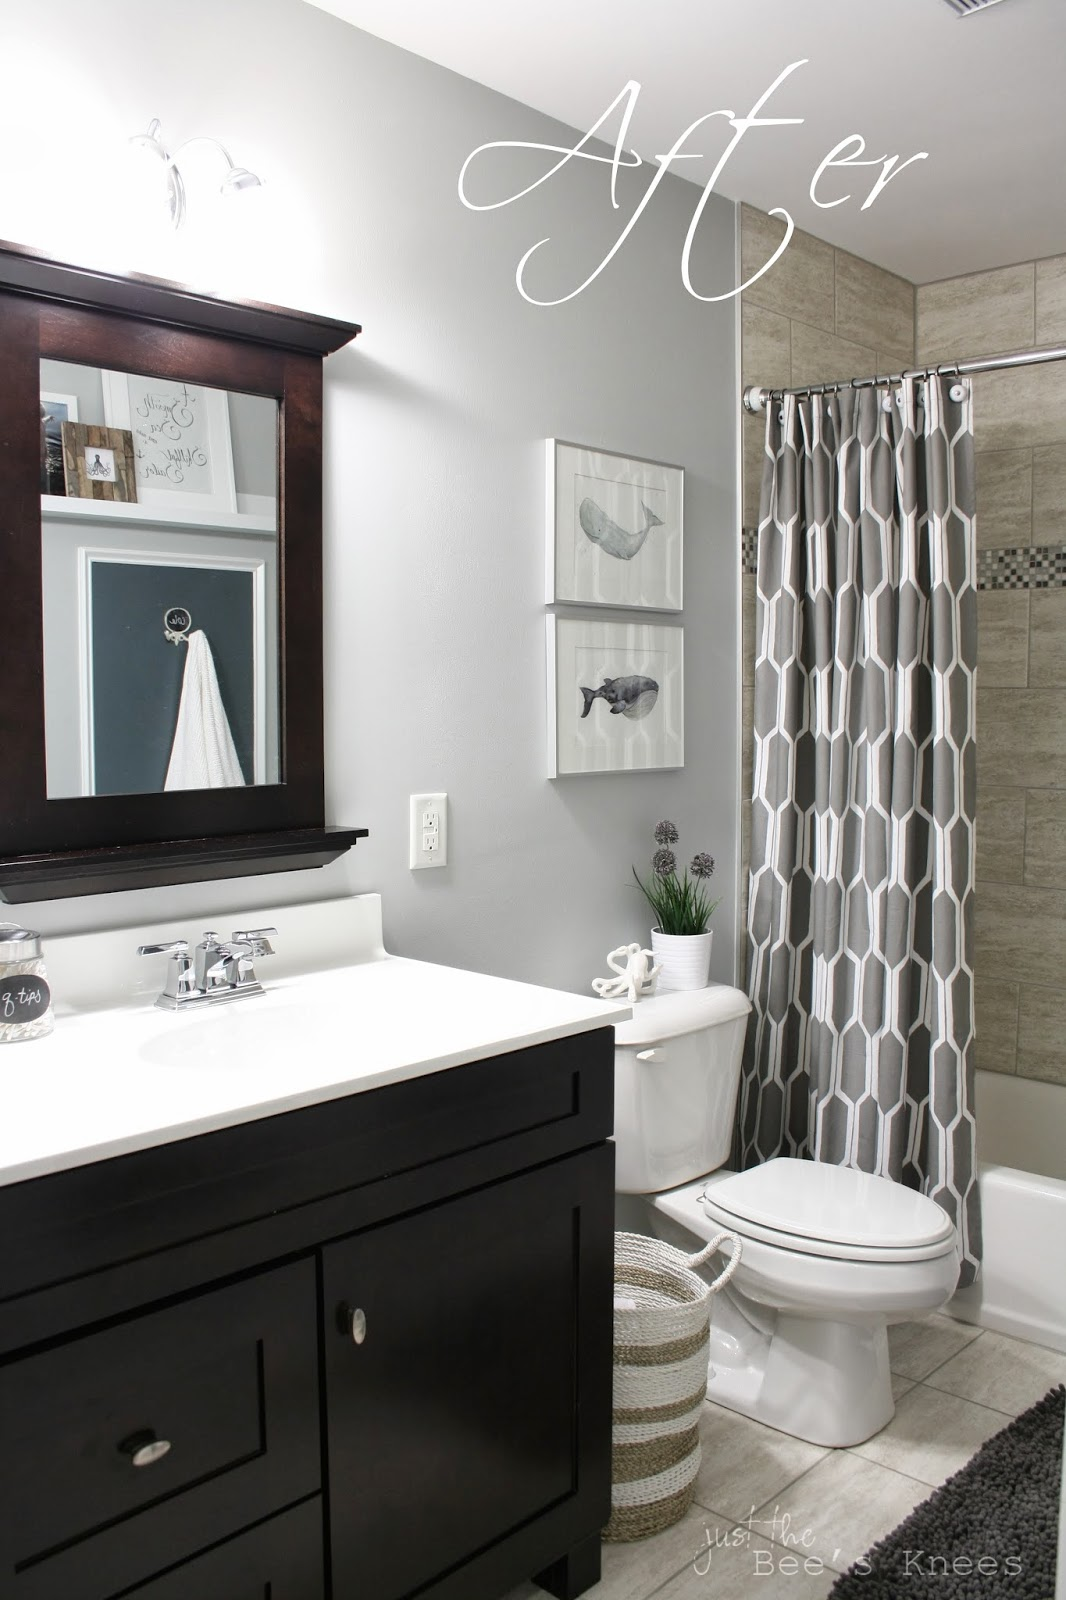 Accent walls favorite paint colors blog - Bathroom design colors ...